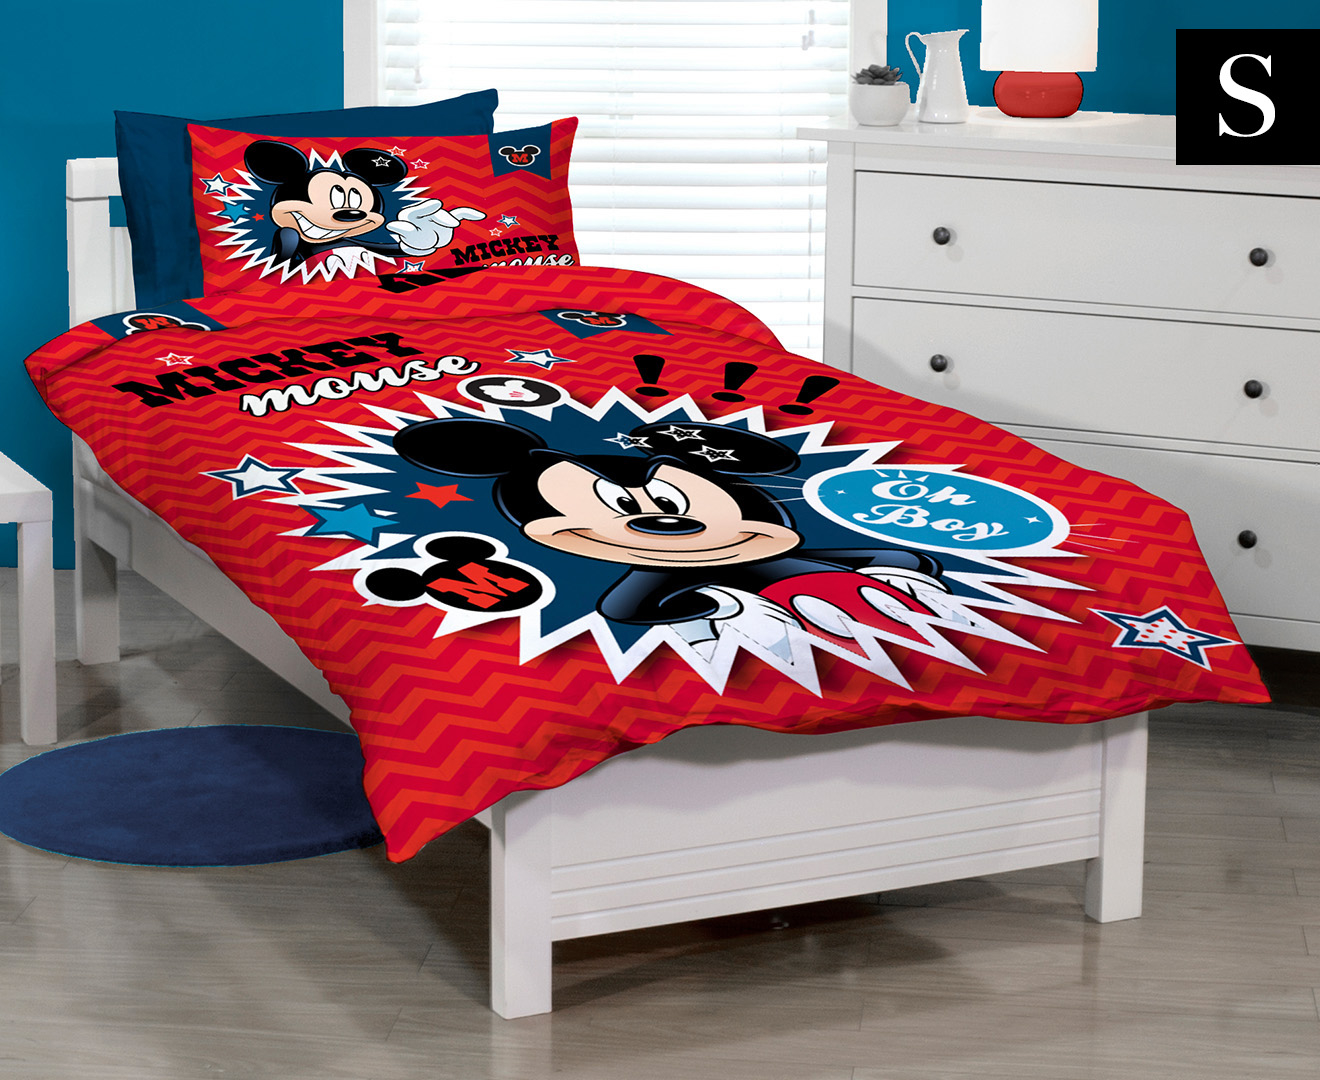 disney mickey mouse clubhouse single bed quilt cover set red ebay. Black Bedroom Furniture Sets. Home Design Ideas